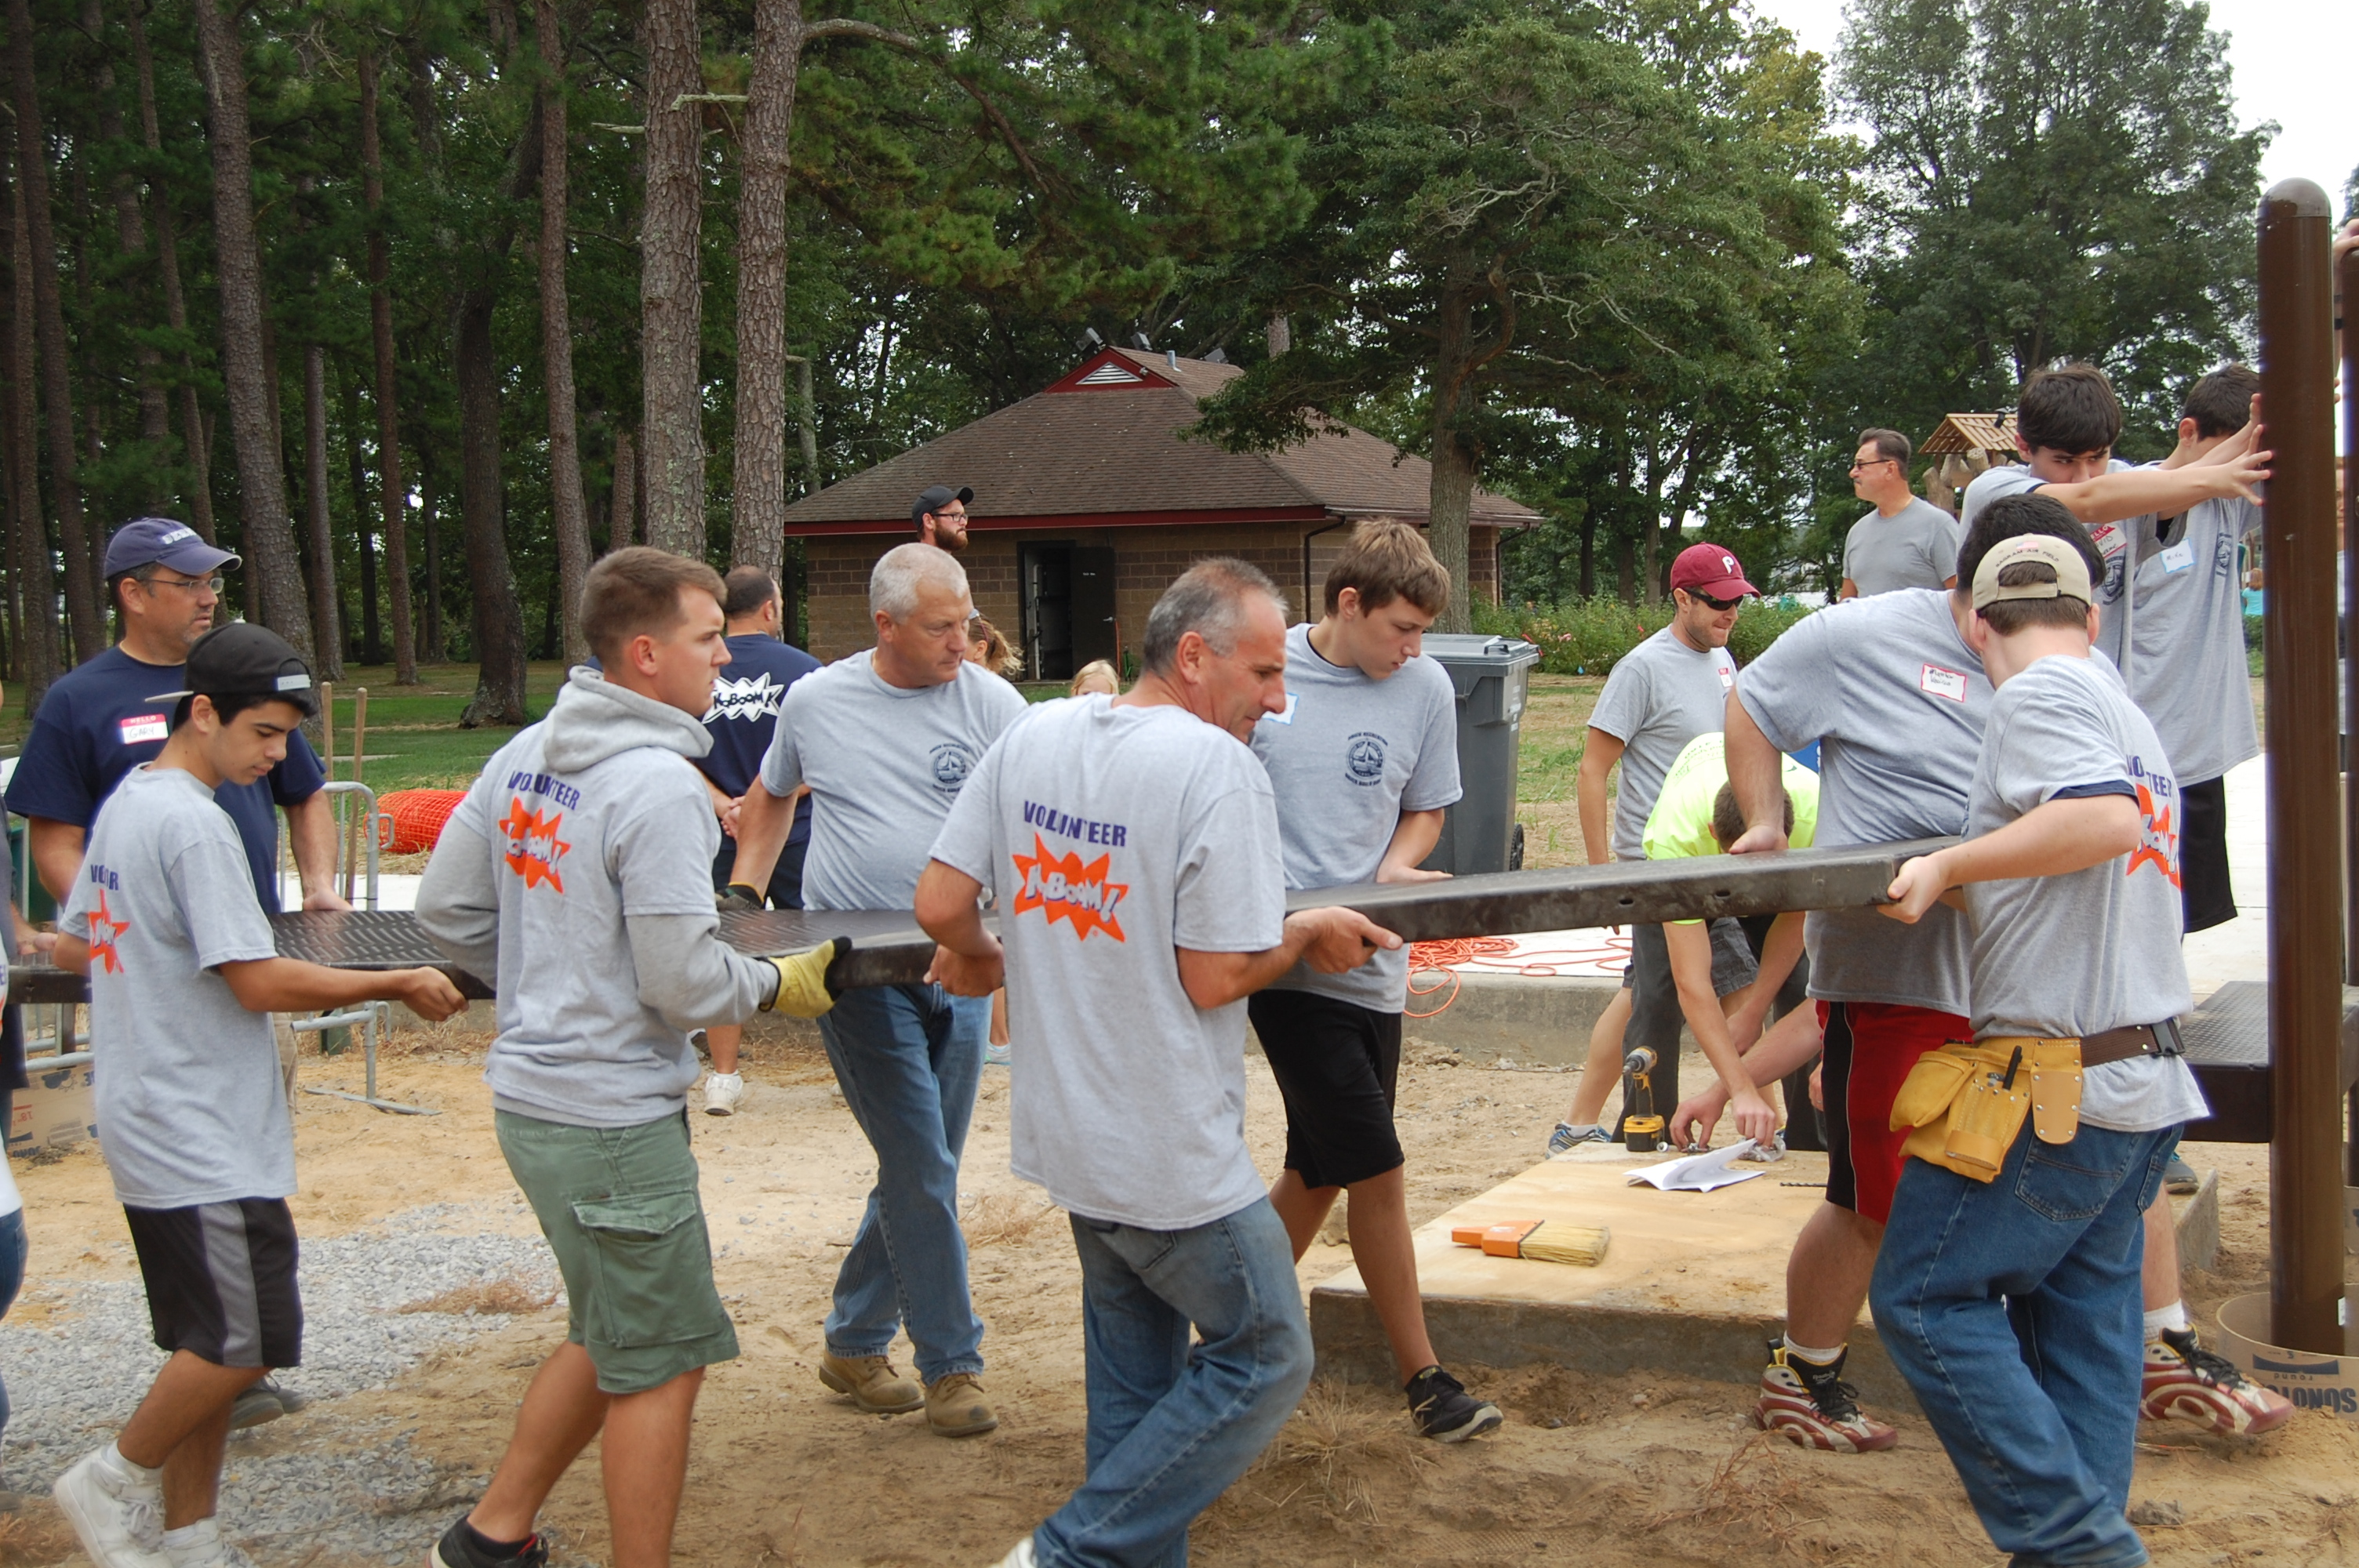 Volunteers help build a boundless playground at Windward Beach Park, Sept. 13, 2014. (Photo: Daniel Nee)